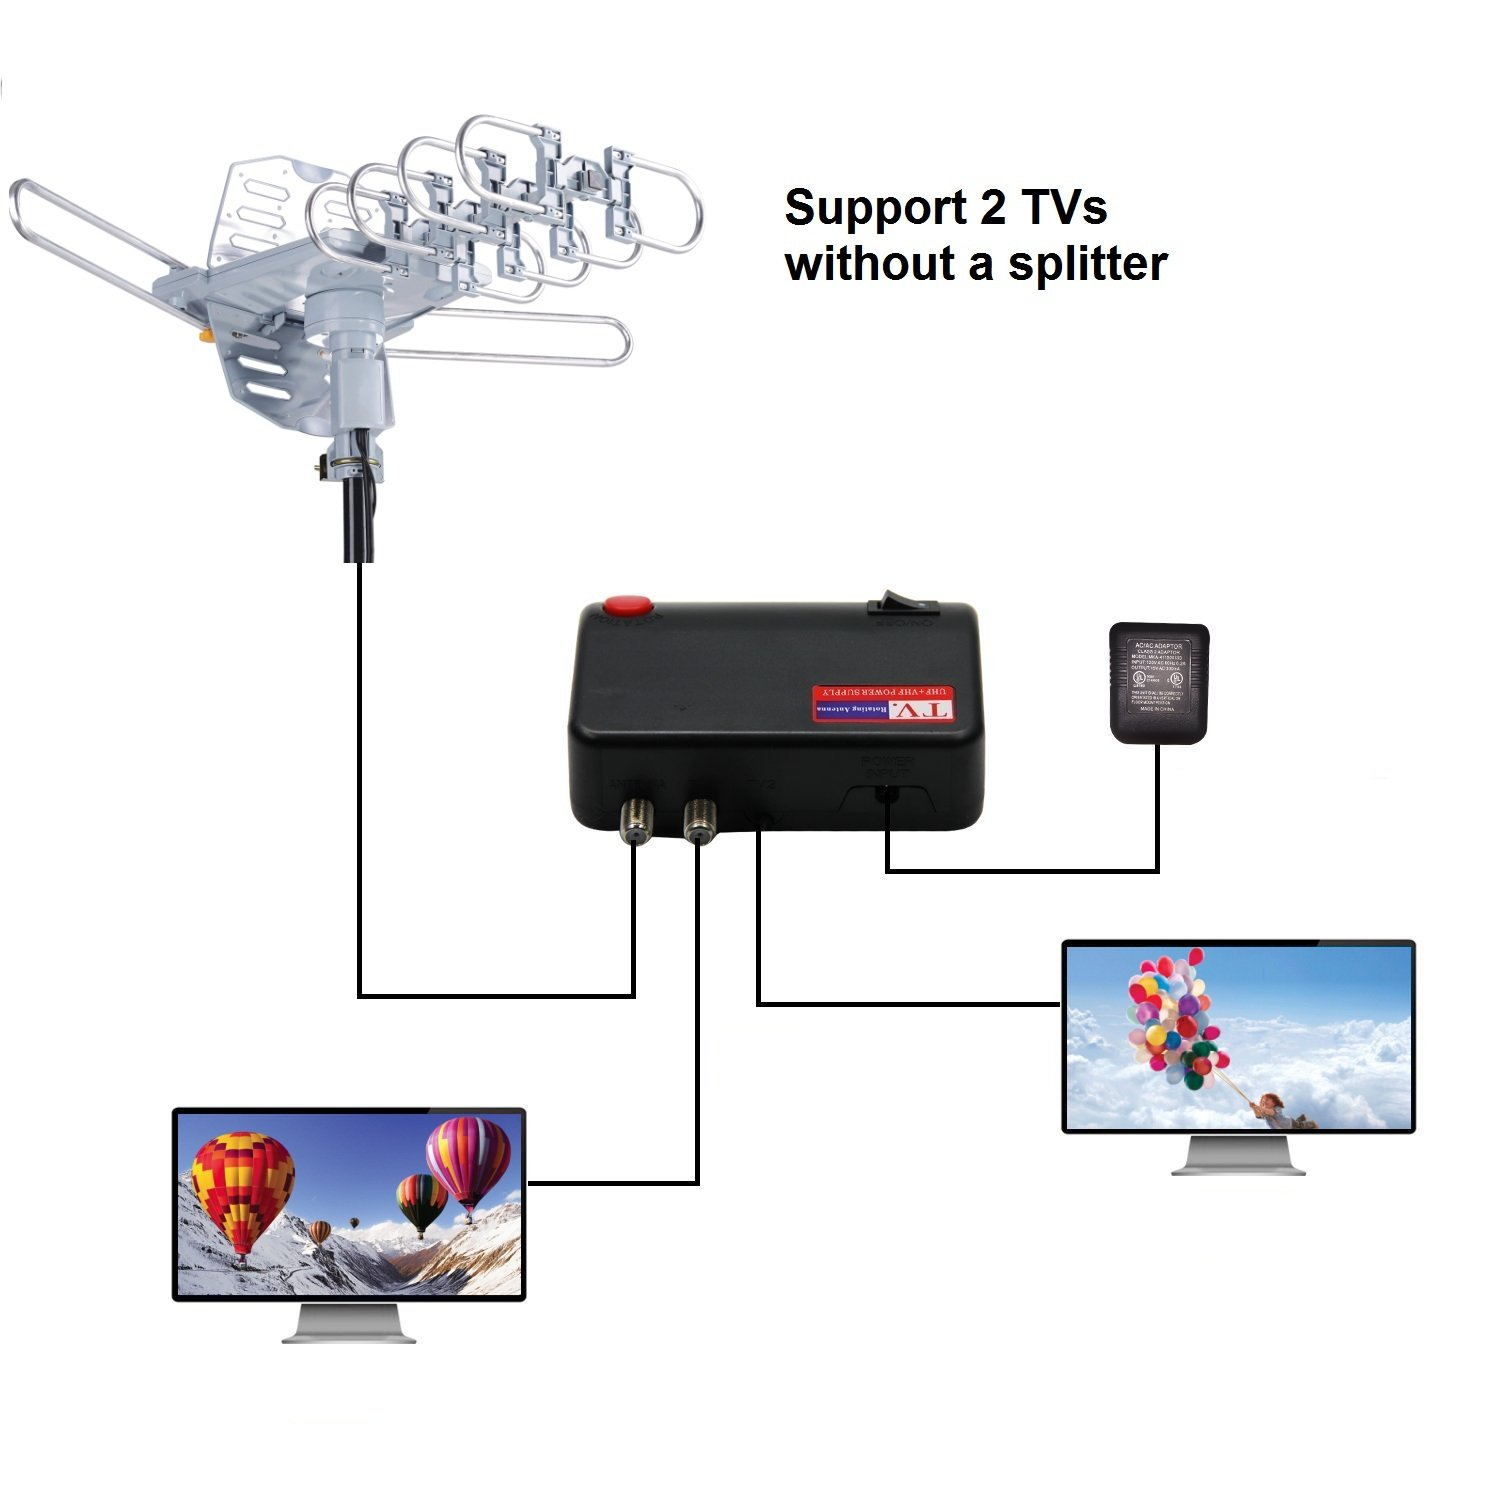 McDuory Outdoor 150 Miles Digital Antenna 360 Degree Rotation Amplified HDTV Antenna Support 2 TVs-UHF//VHF//1080P//4K 40ft RG6 Cable and Mounting Pole Included Infrared Remote